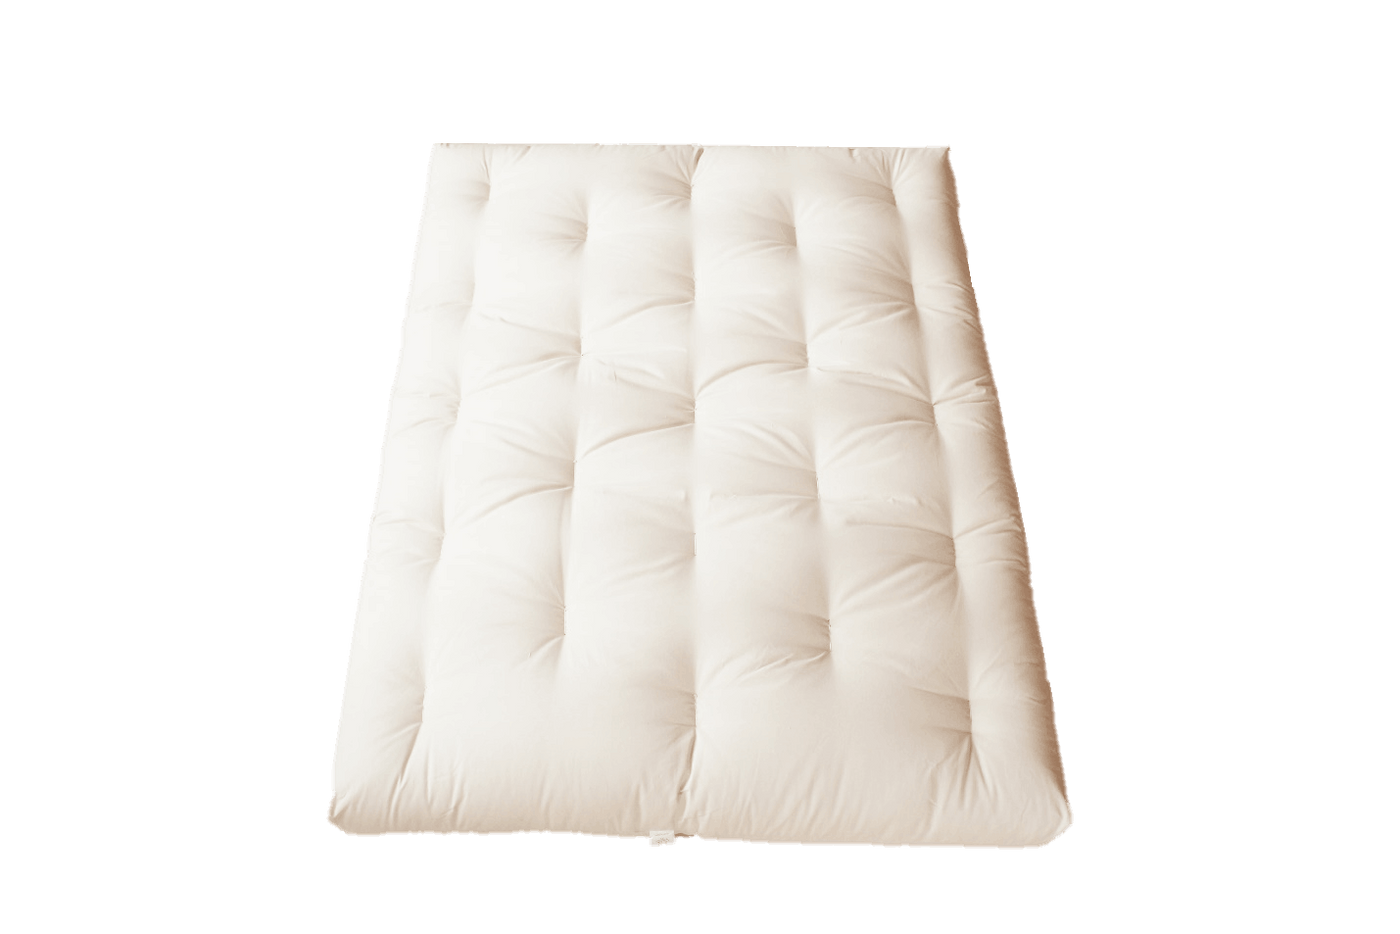 Green Cotton Mattress without Fire Retardant